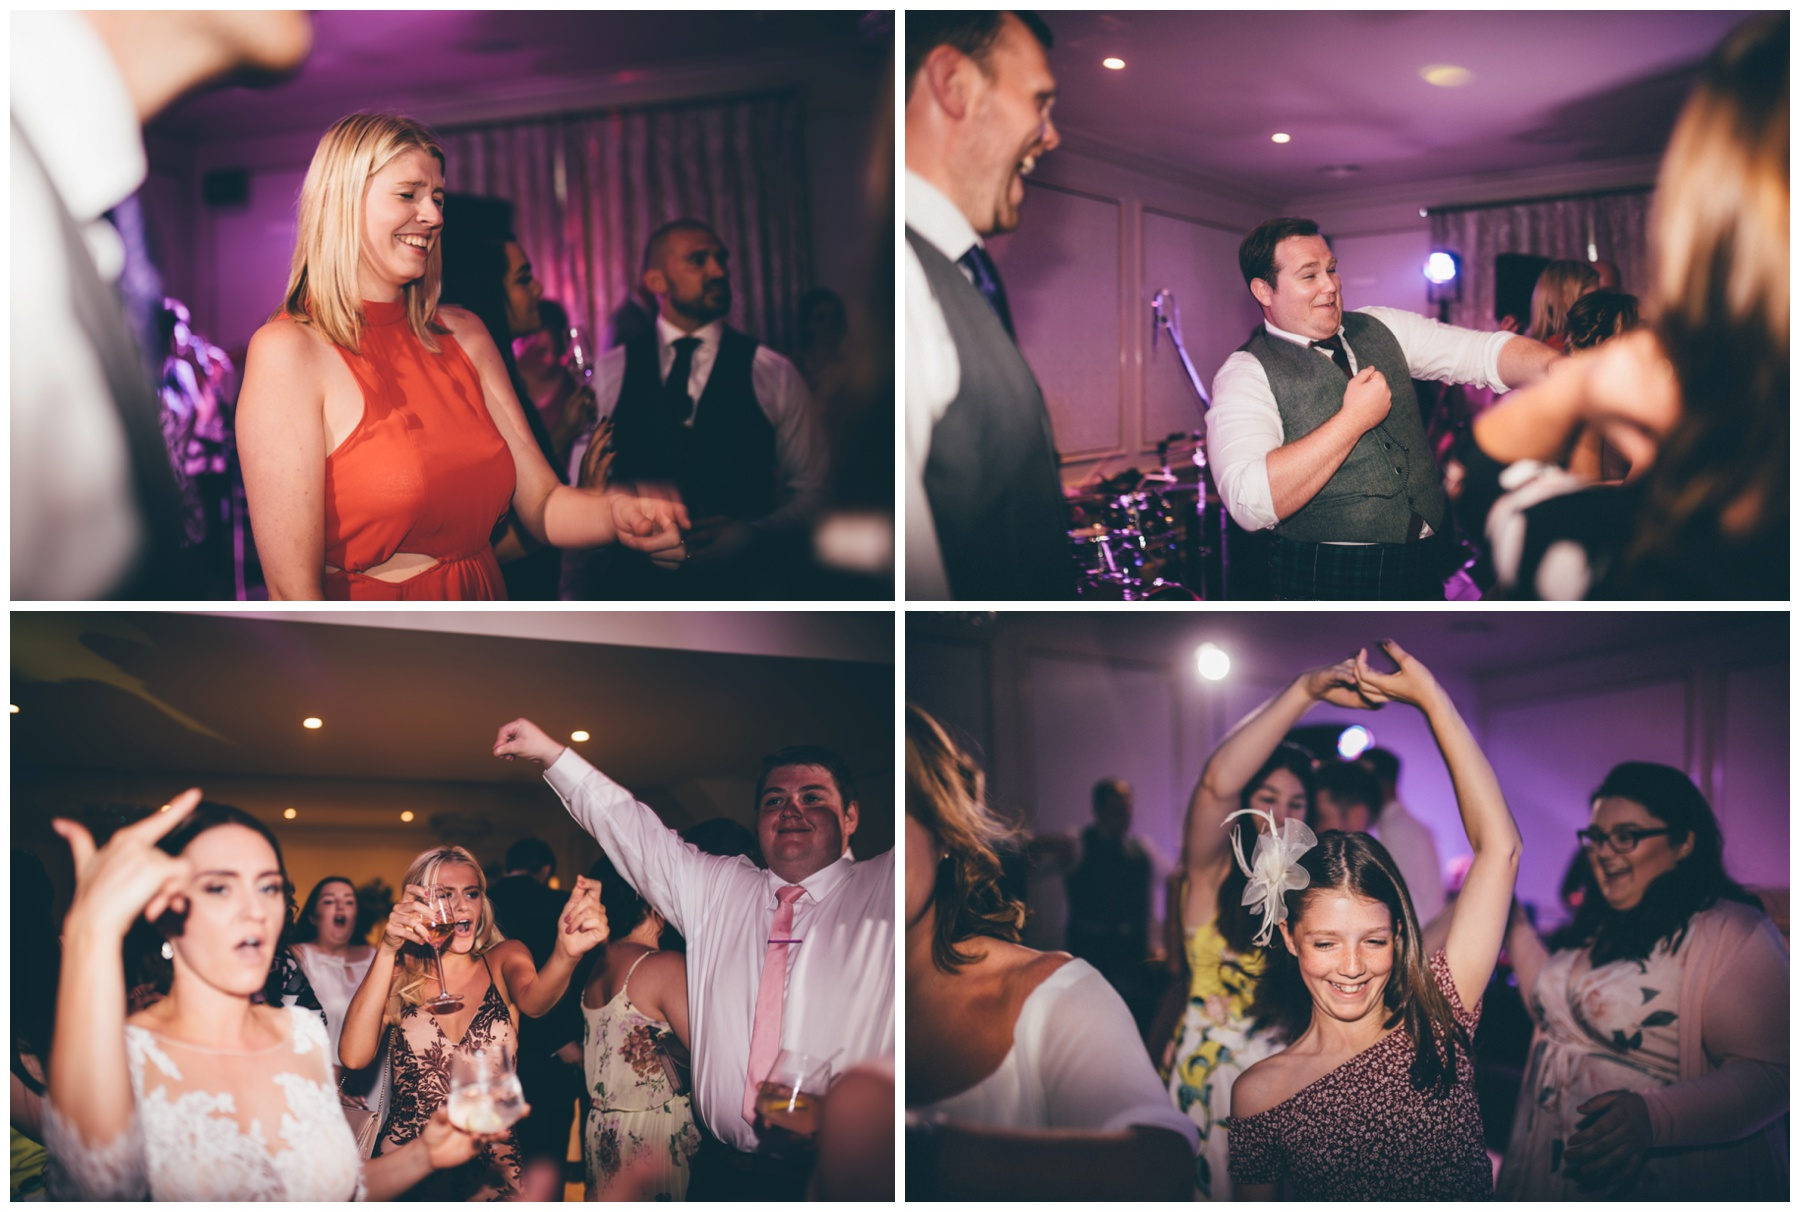 Wedding guests on the dance floor at Tilstone House in Tarporley, Cheshire.